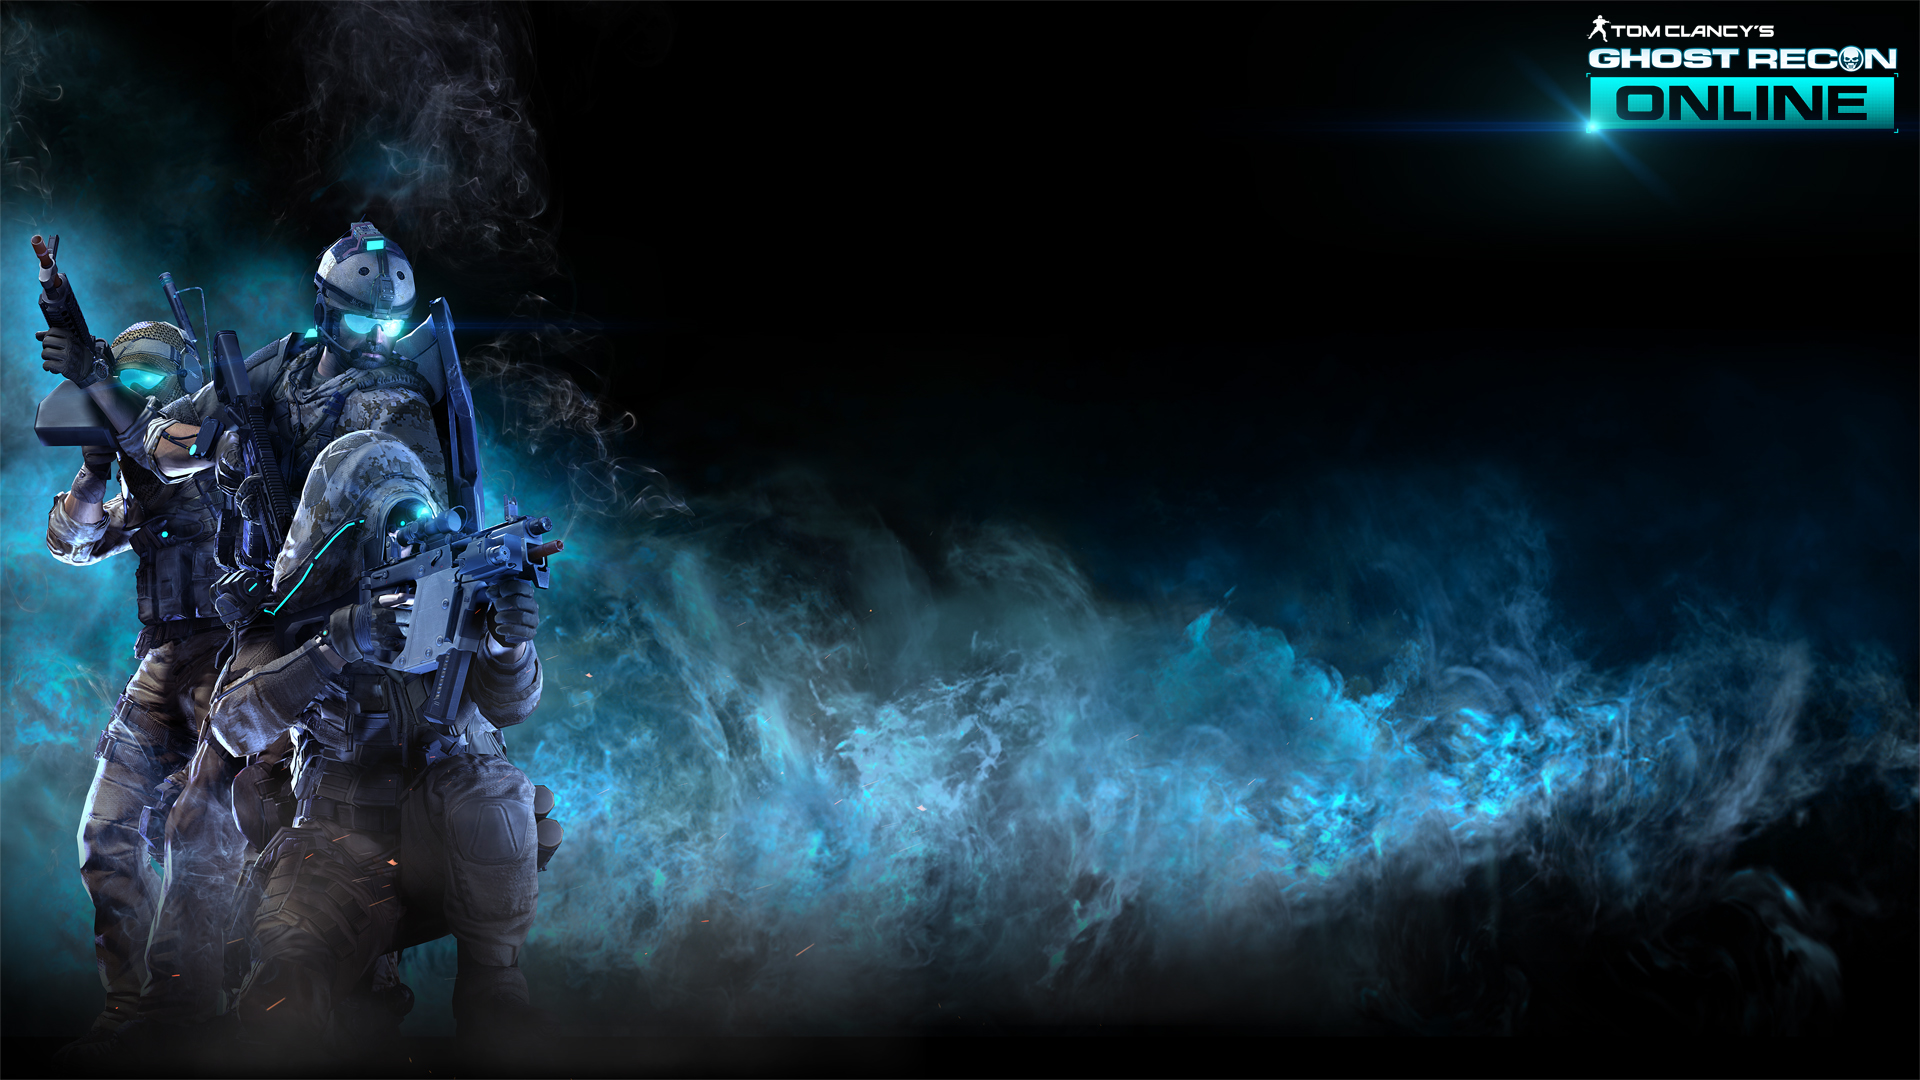 2013 Tom Clancys Ghost Recon Online Wallpapers HD Wallpapers 1920x1080